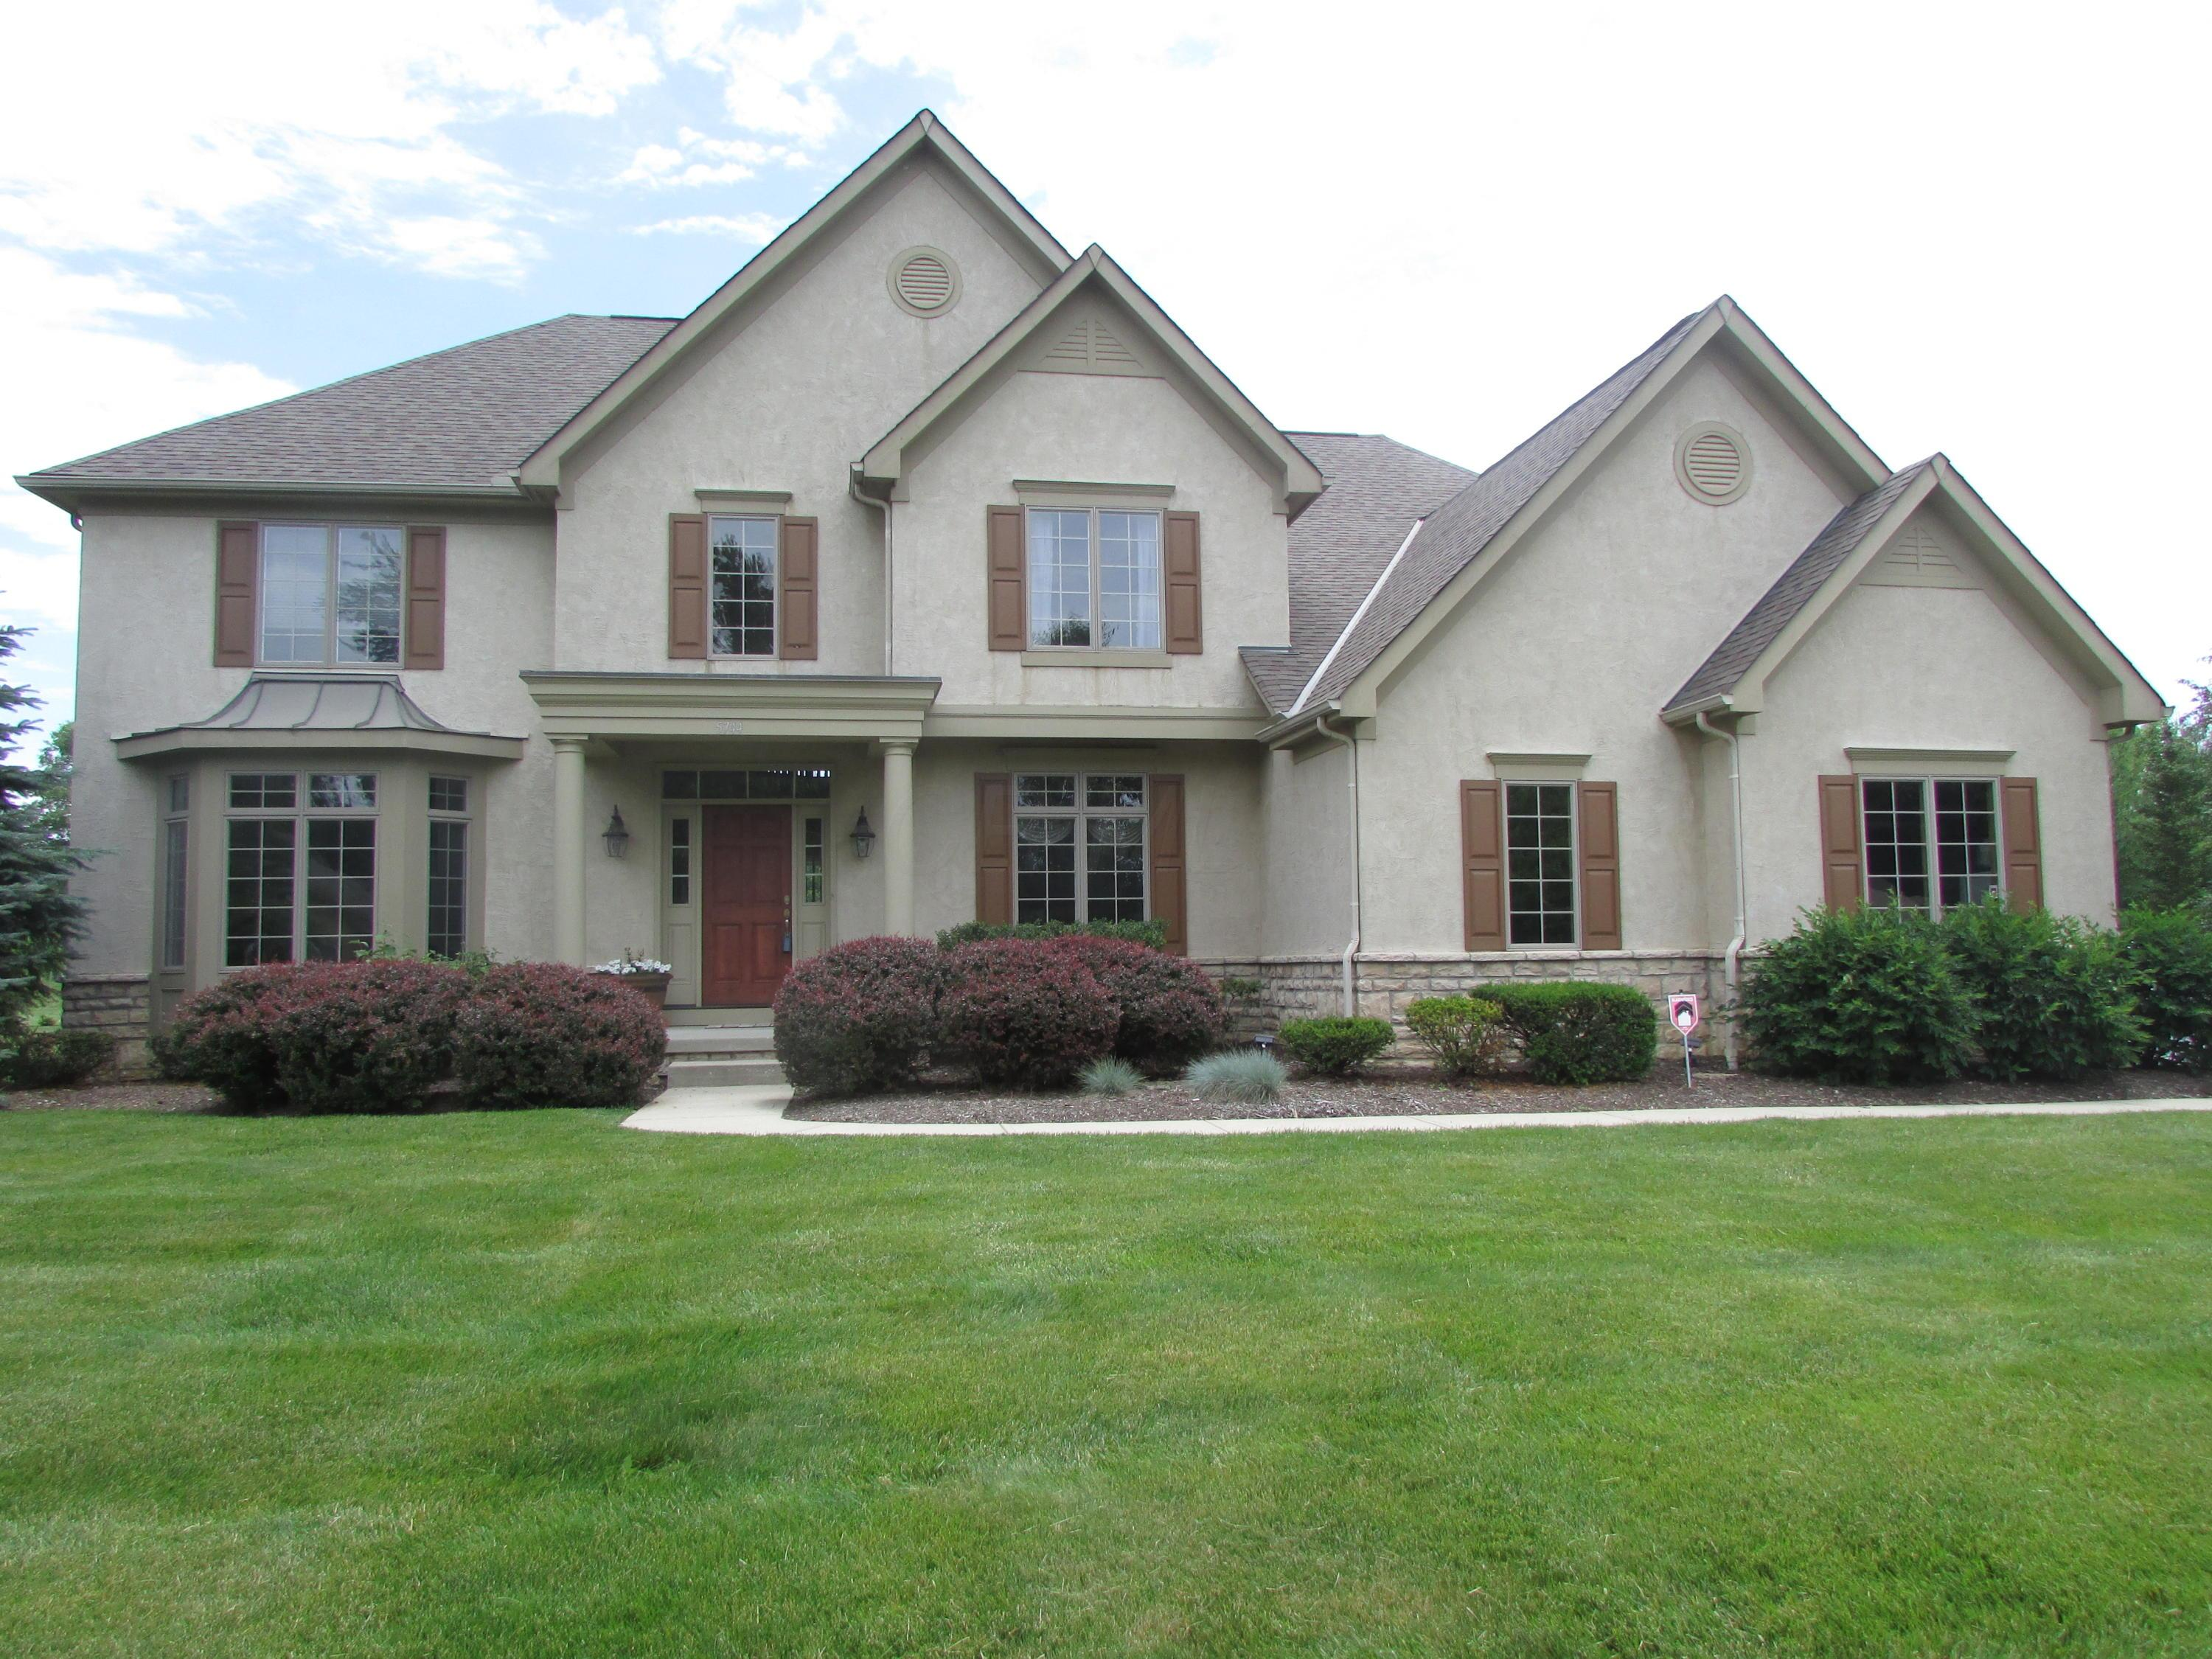 5744 STREAMSIDE Drive Central Home Listings - RE/MAX Achievers Real Estate